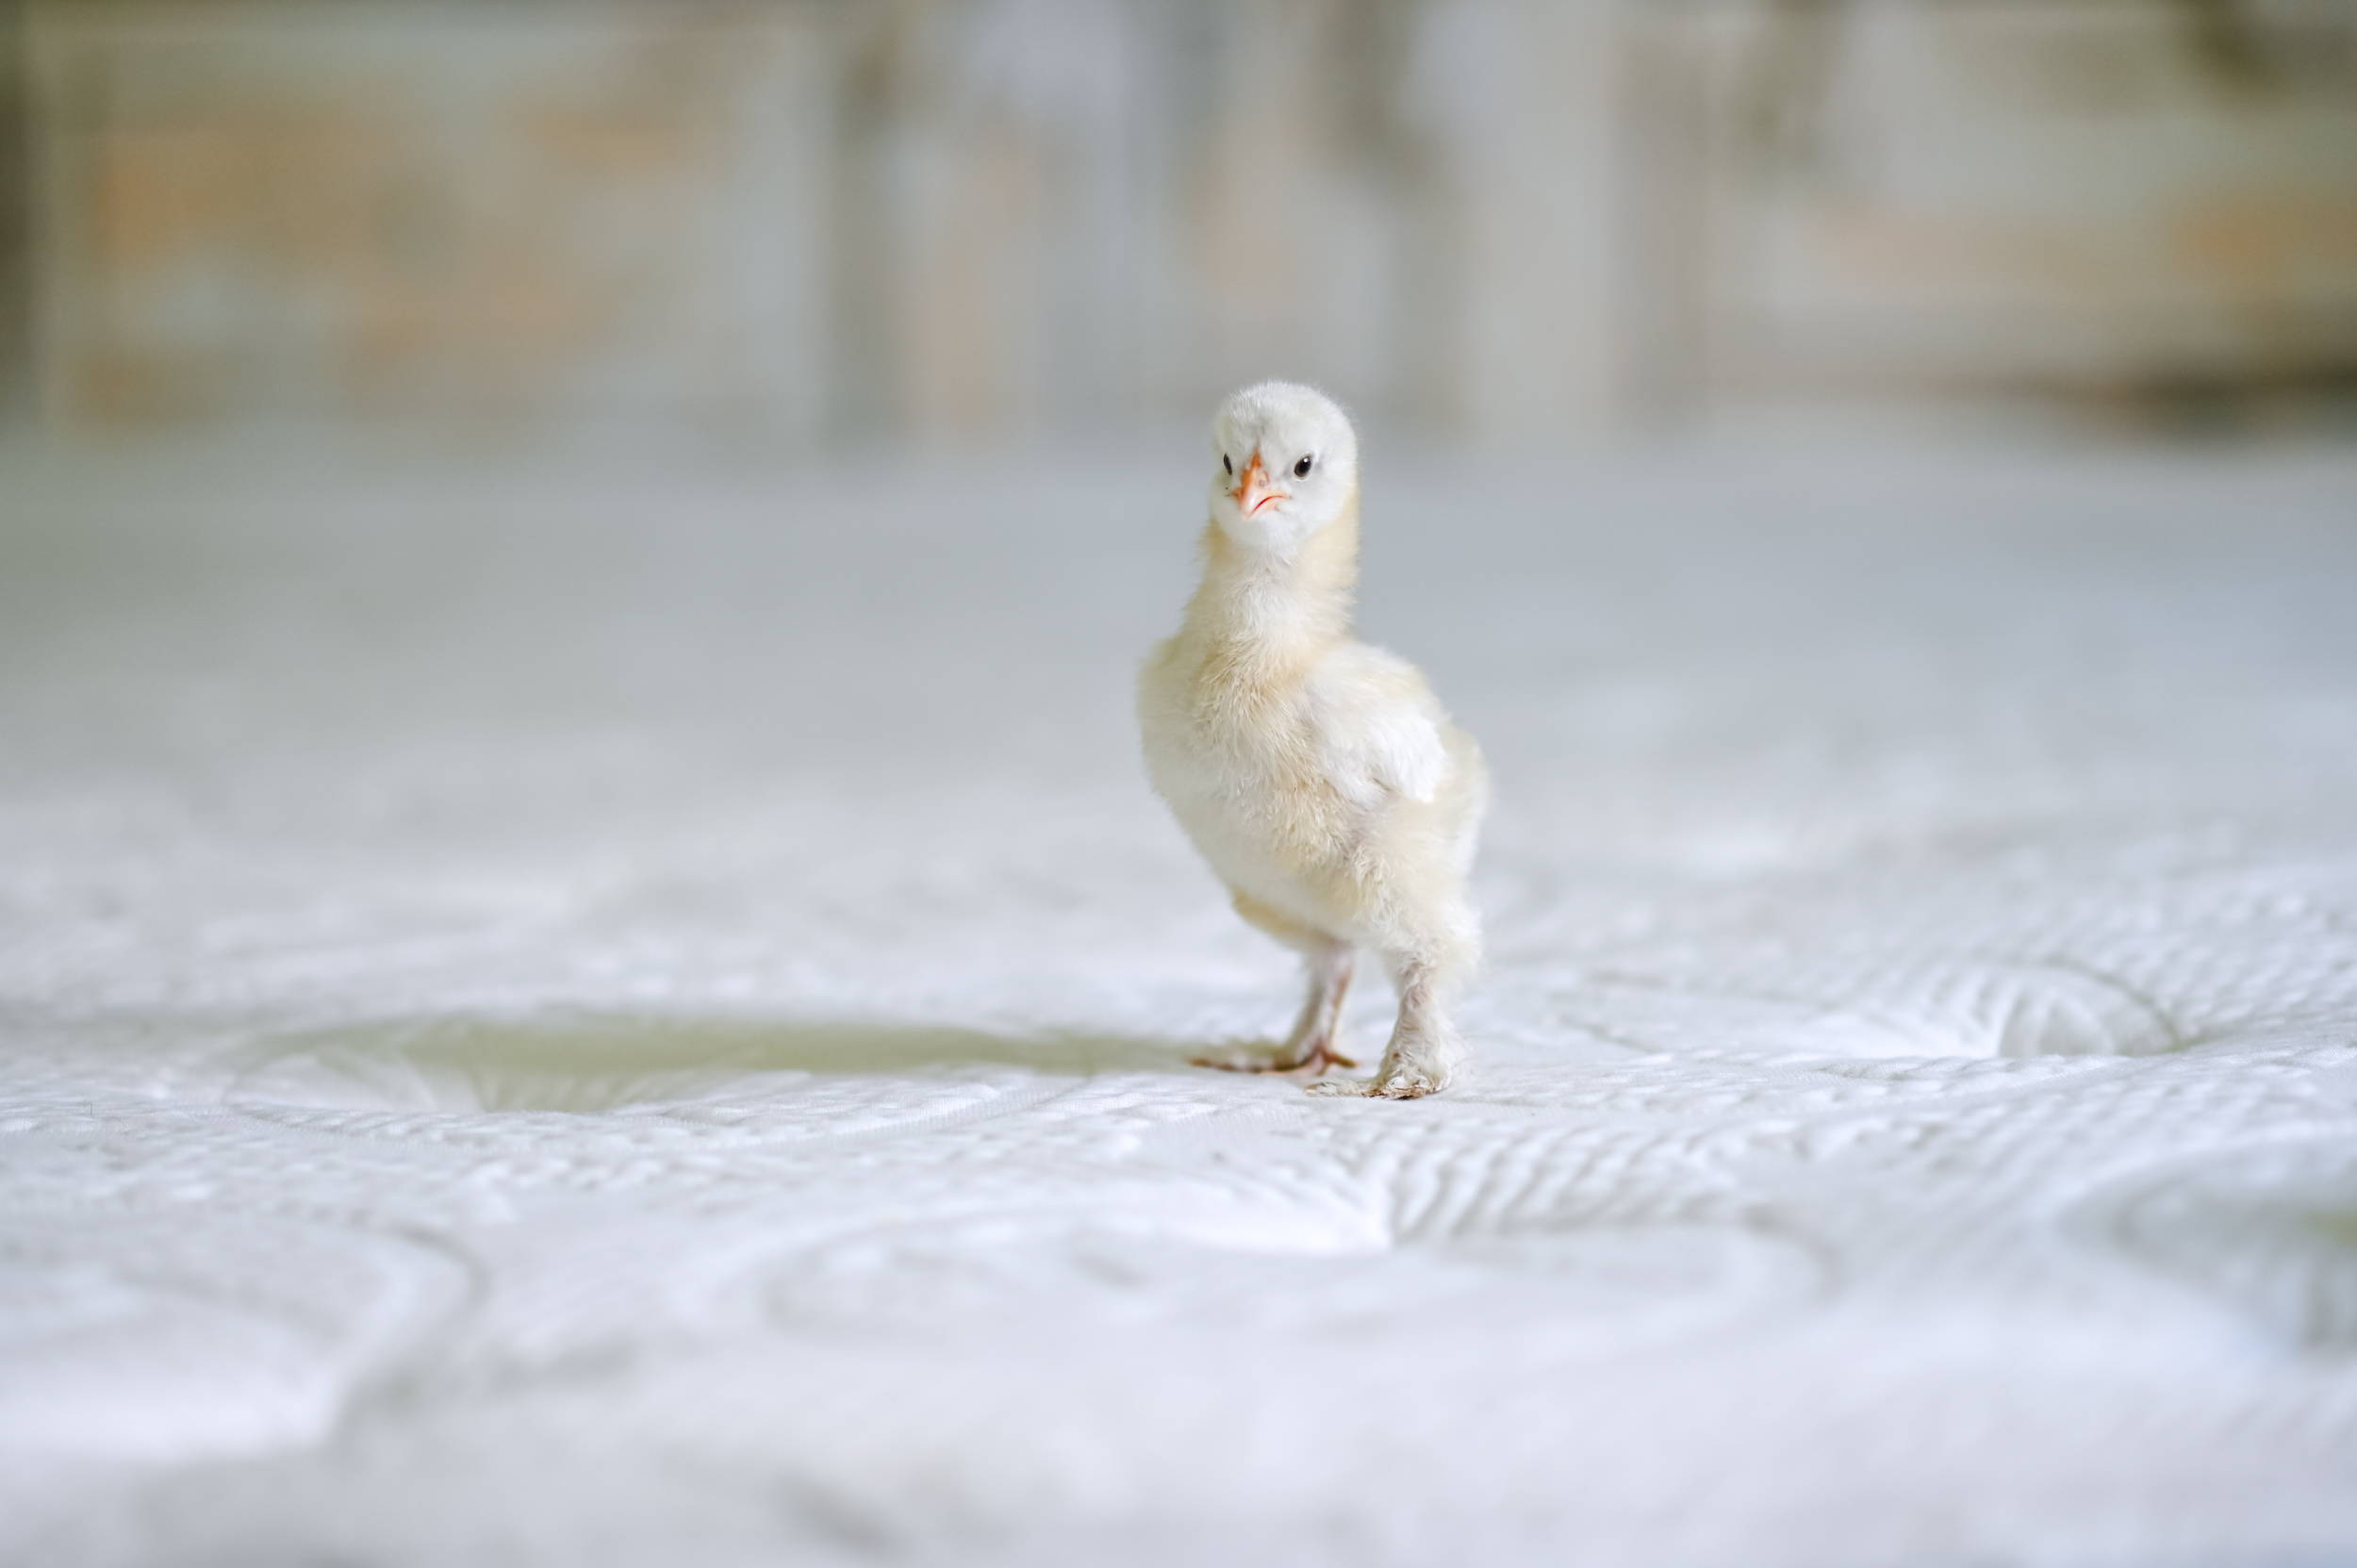 """A small yellow chick standing on a 14"""" Lux Hybrid Haven mattress."""